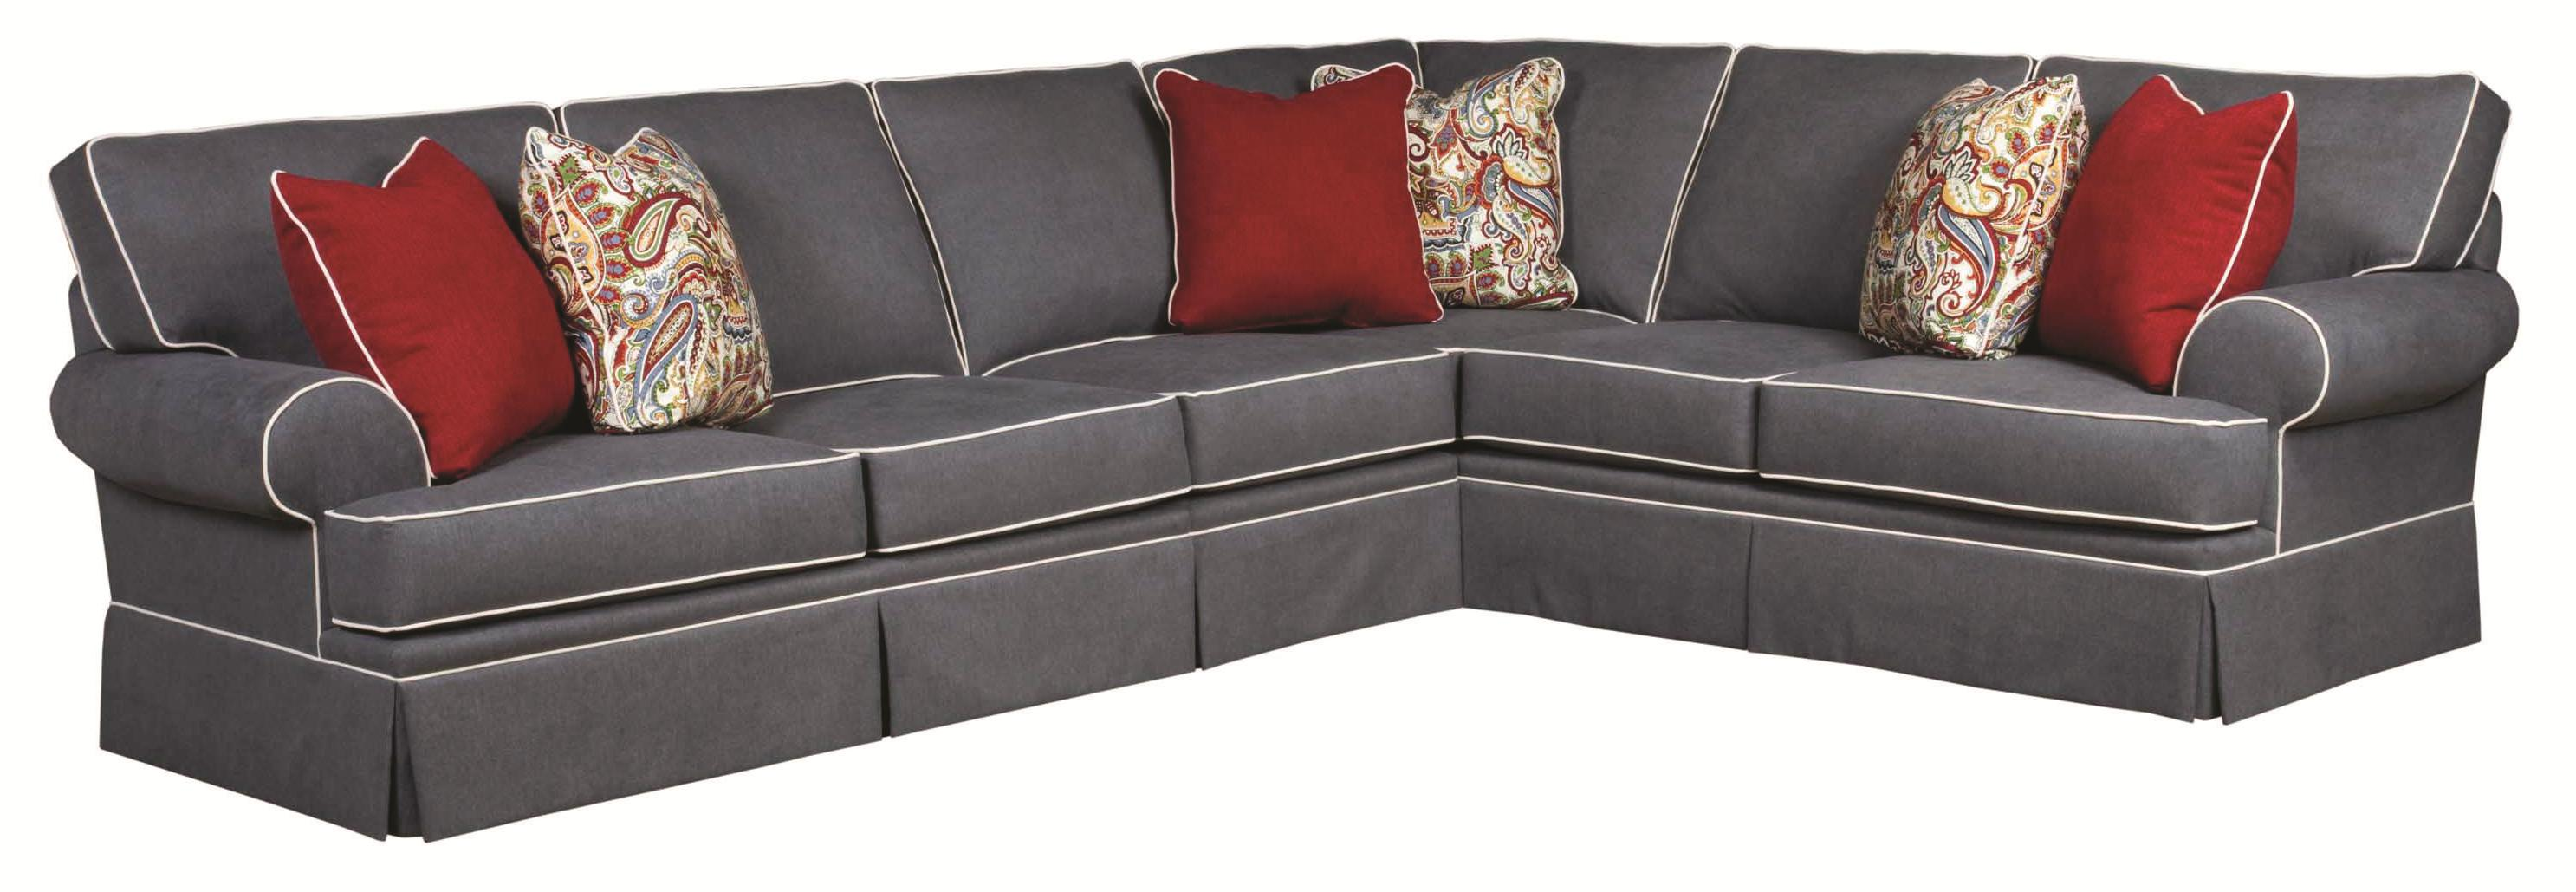 Broyhill Furniture Emily Traditional 3 Piece Sectional Sofa With Skirted  Base   AHFA   Sofa Sectional Dealer Locator